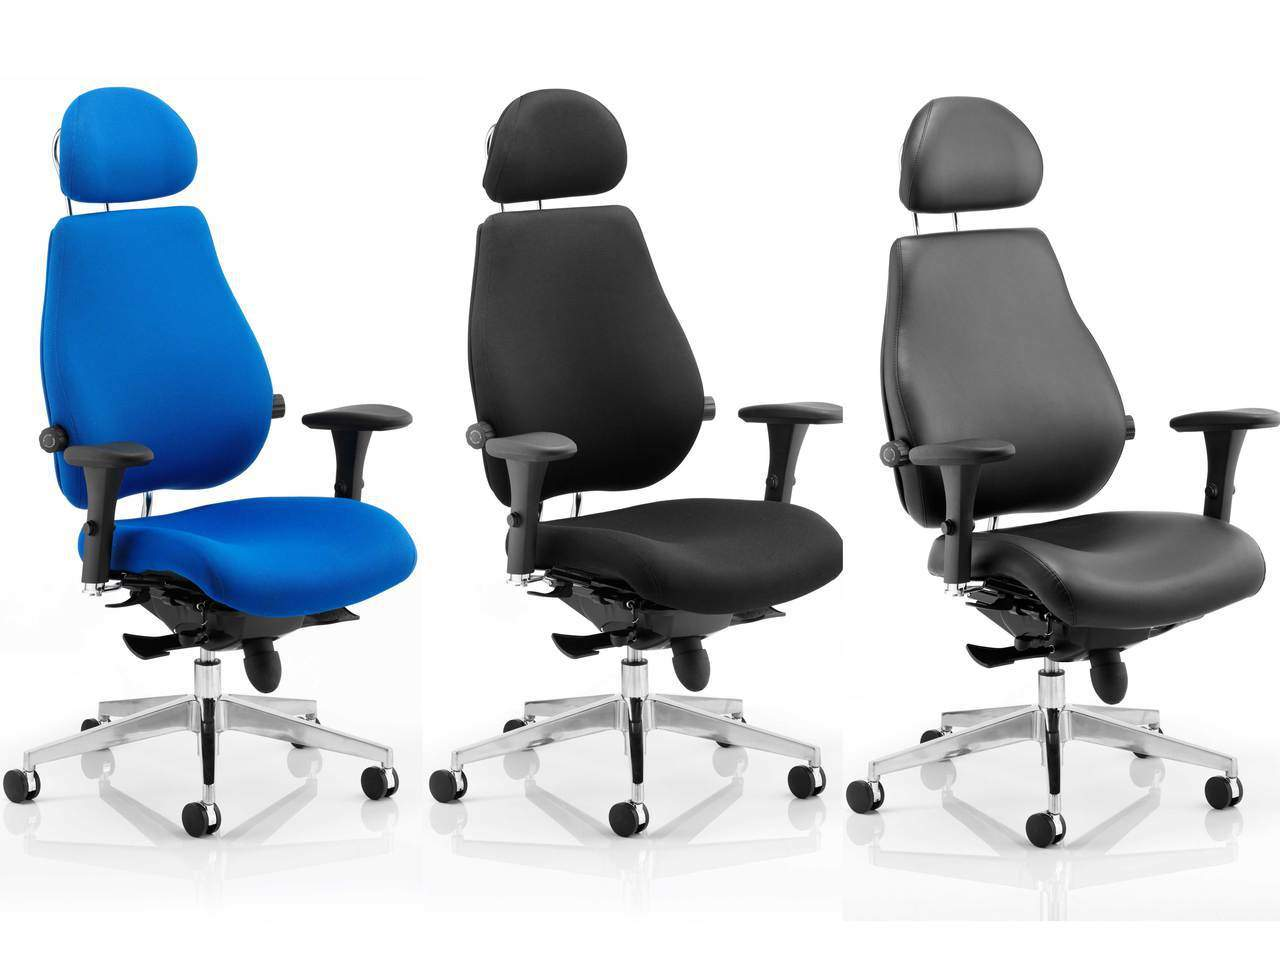 Chiro Plus ULTIMATE 24 Hour Ergonomic Posture Office Chair in Blue or Black Fabric or Leather